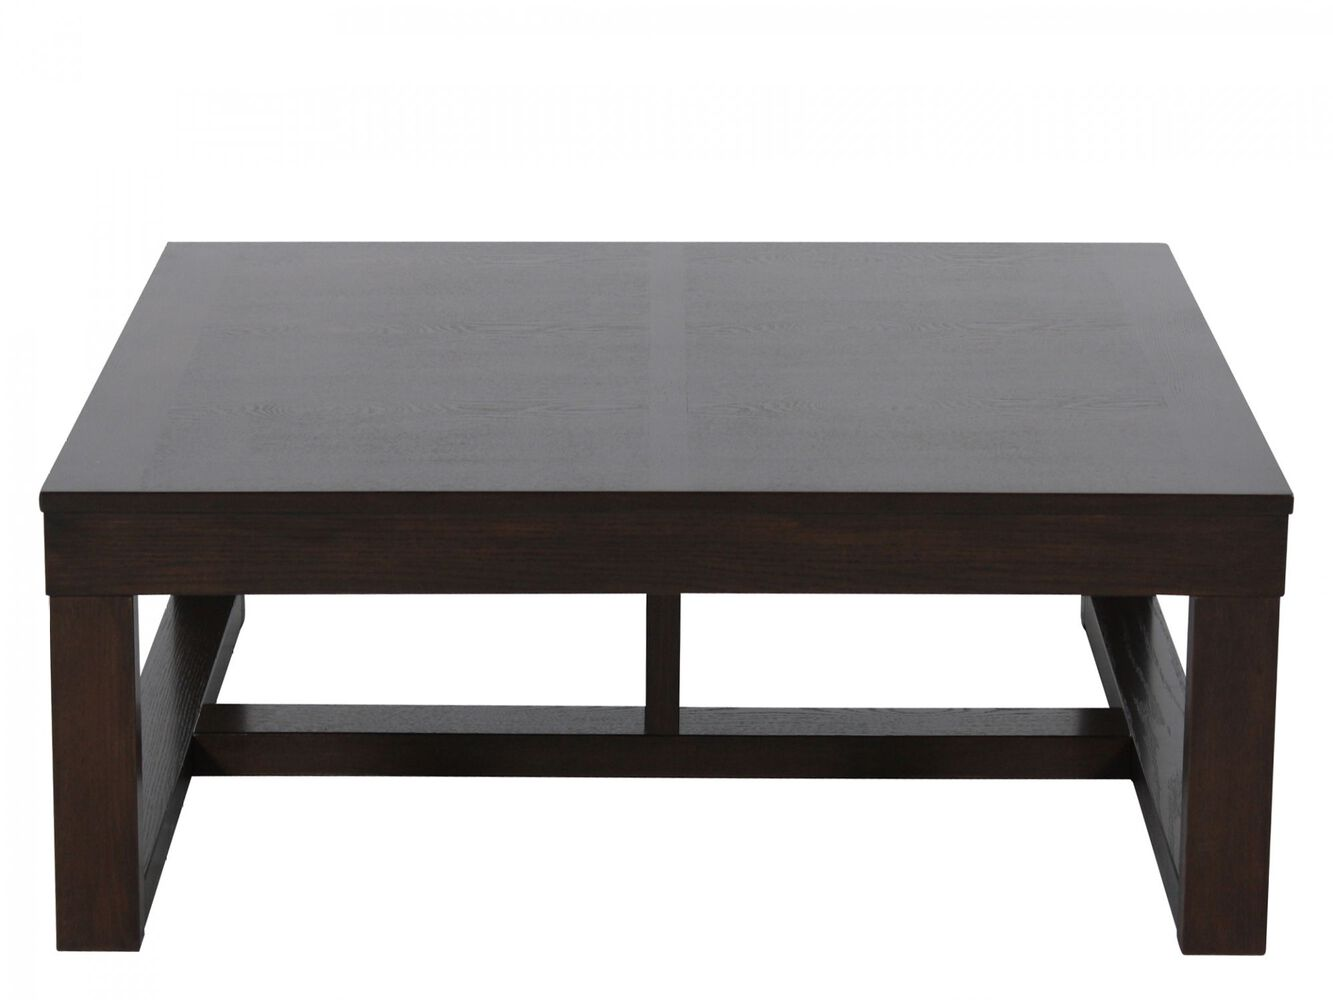 Scrolled metal and wood coffee table - Ashley Watson Cocktail Table